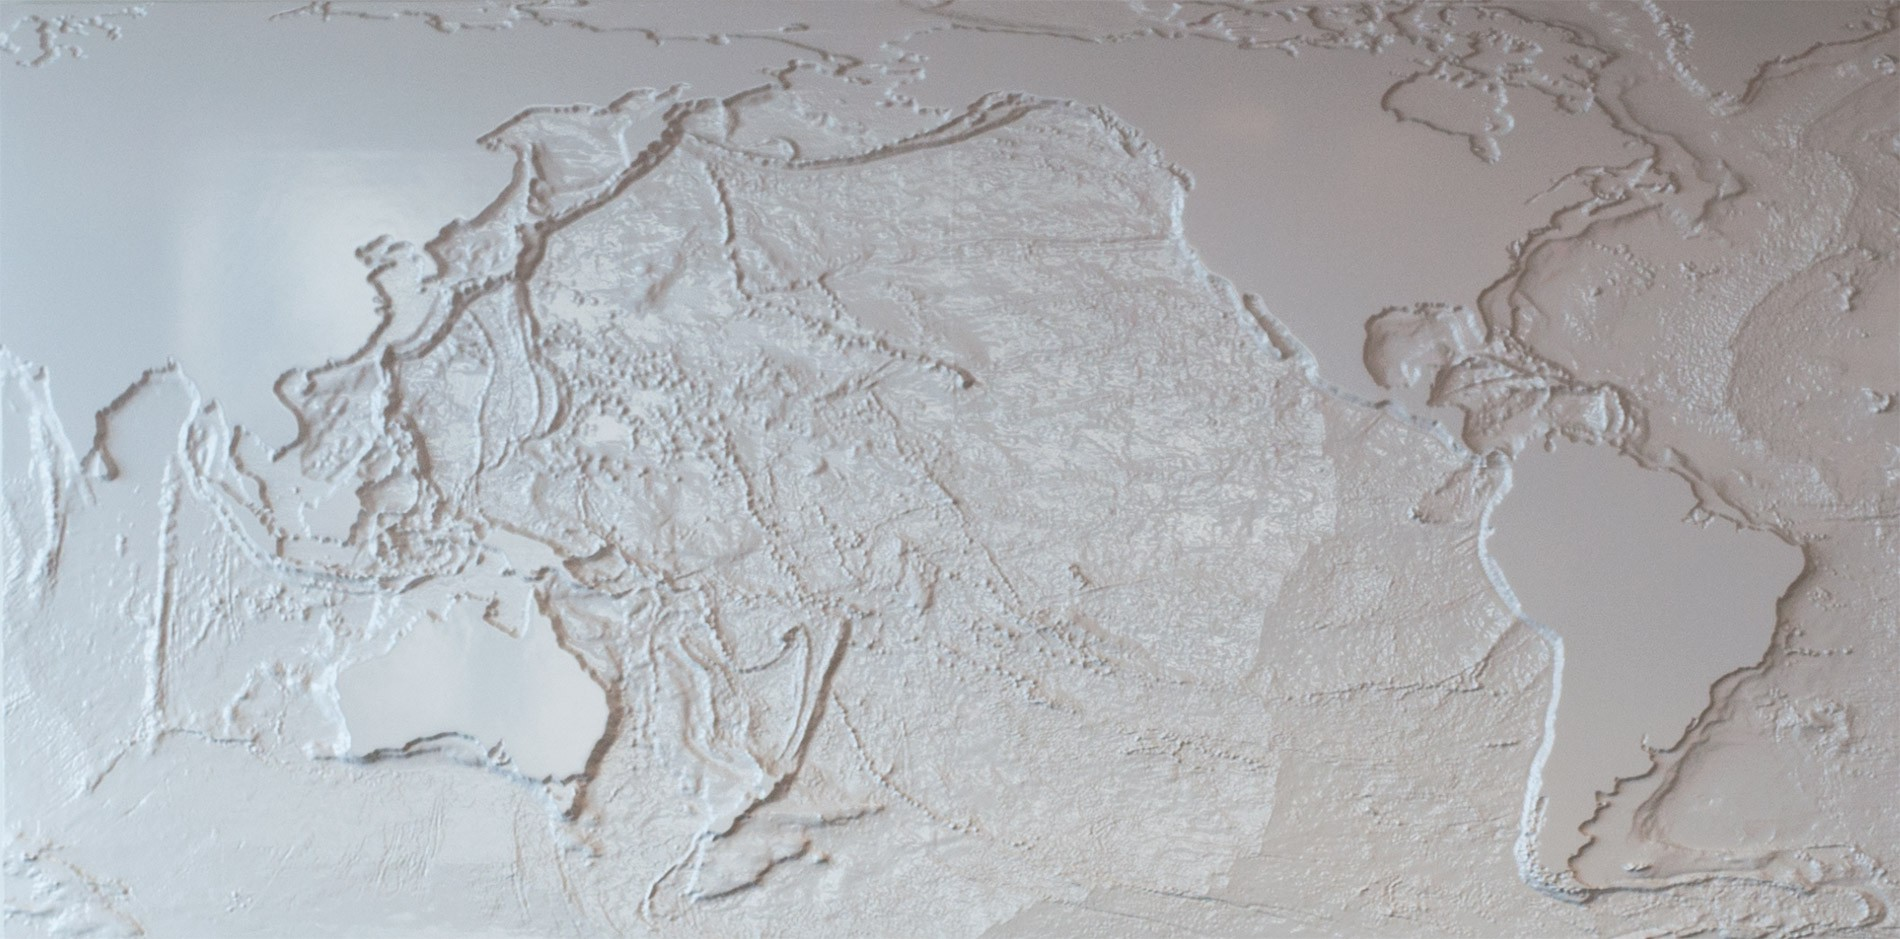 Creating a giant 3D bathymetric map, out of 2D data, for Matson